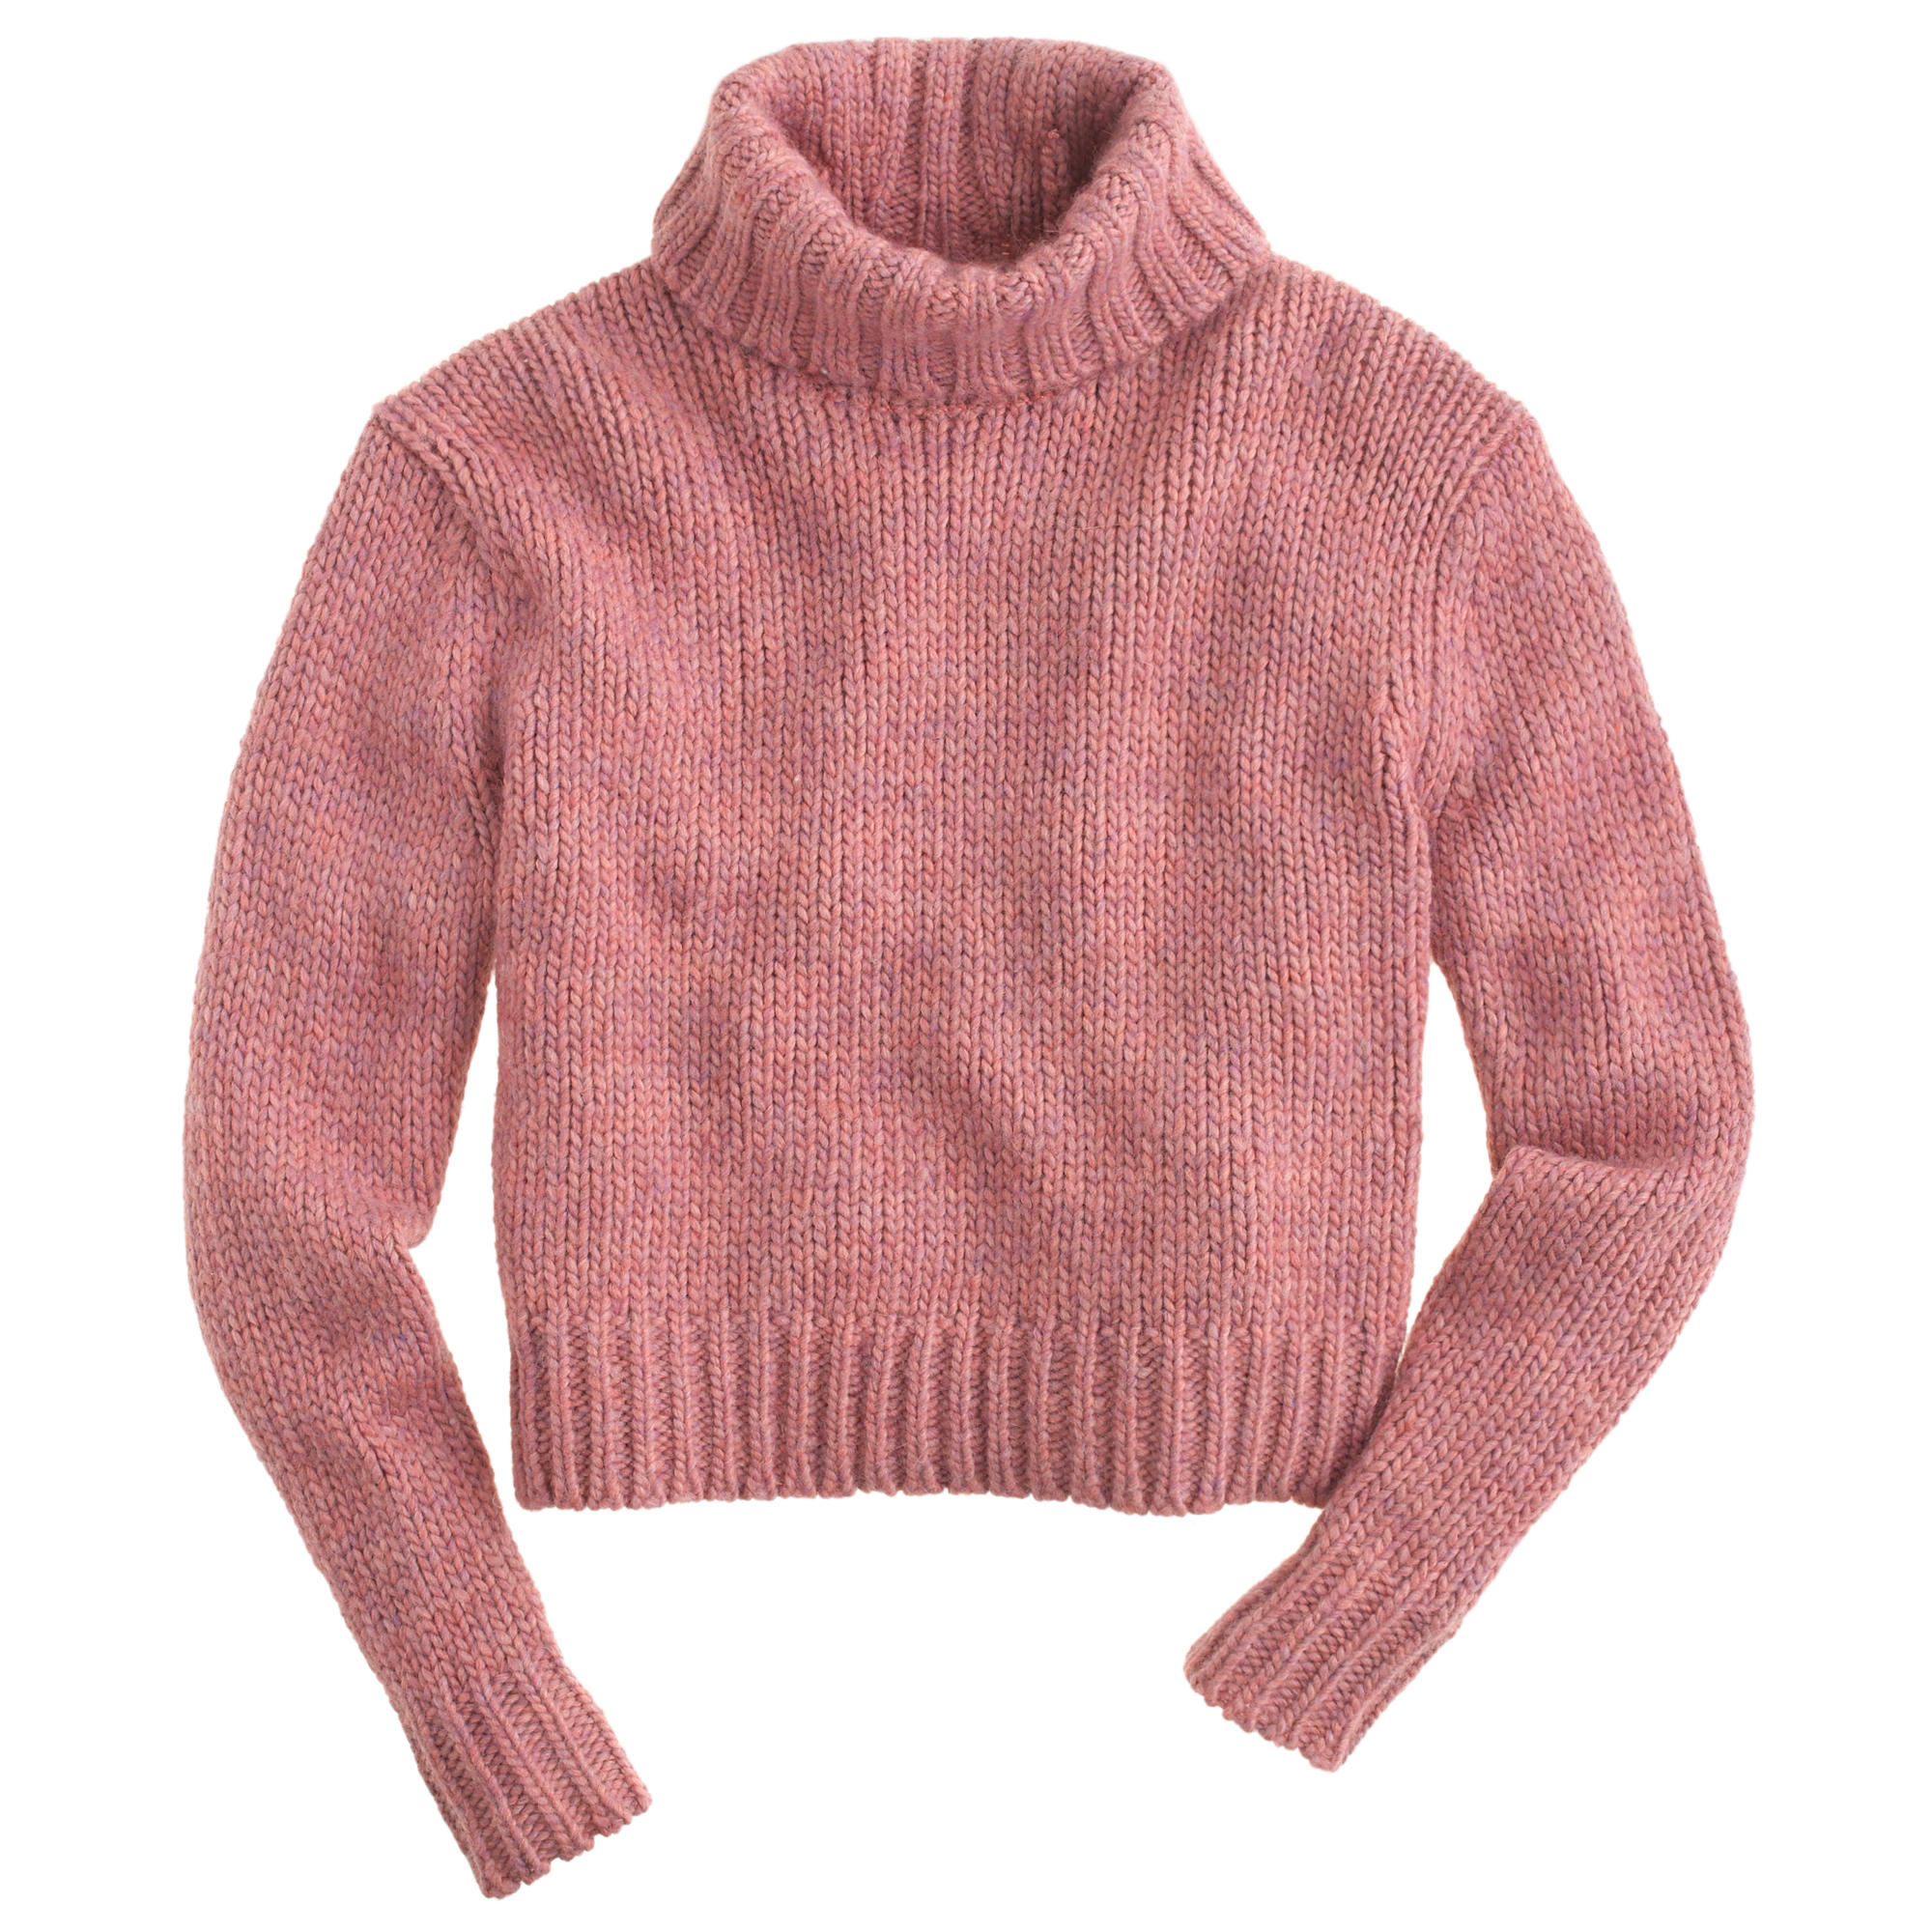 J.crew Petite Chunky Turtleneck Sweater in Pink | Lyst